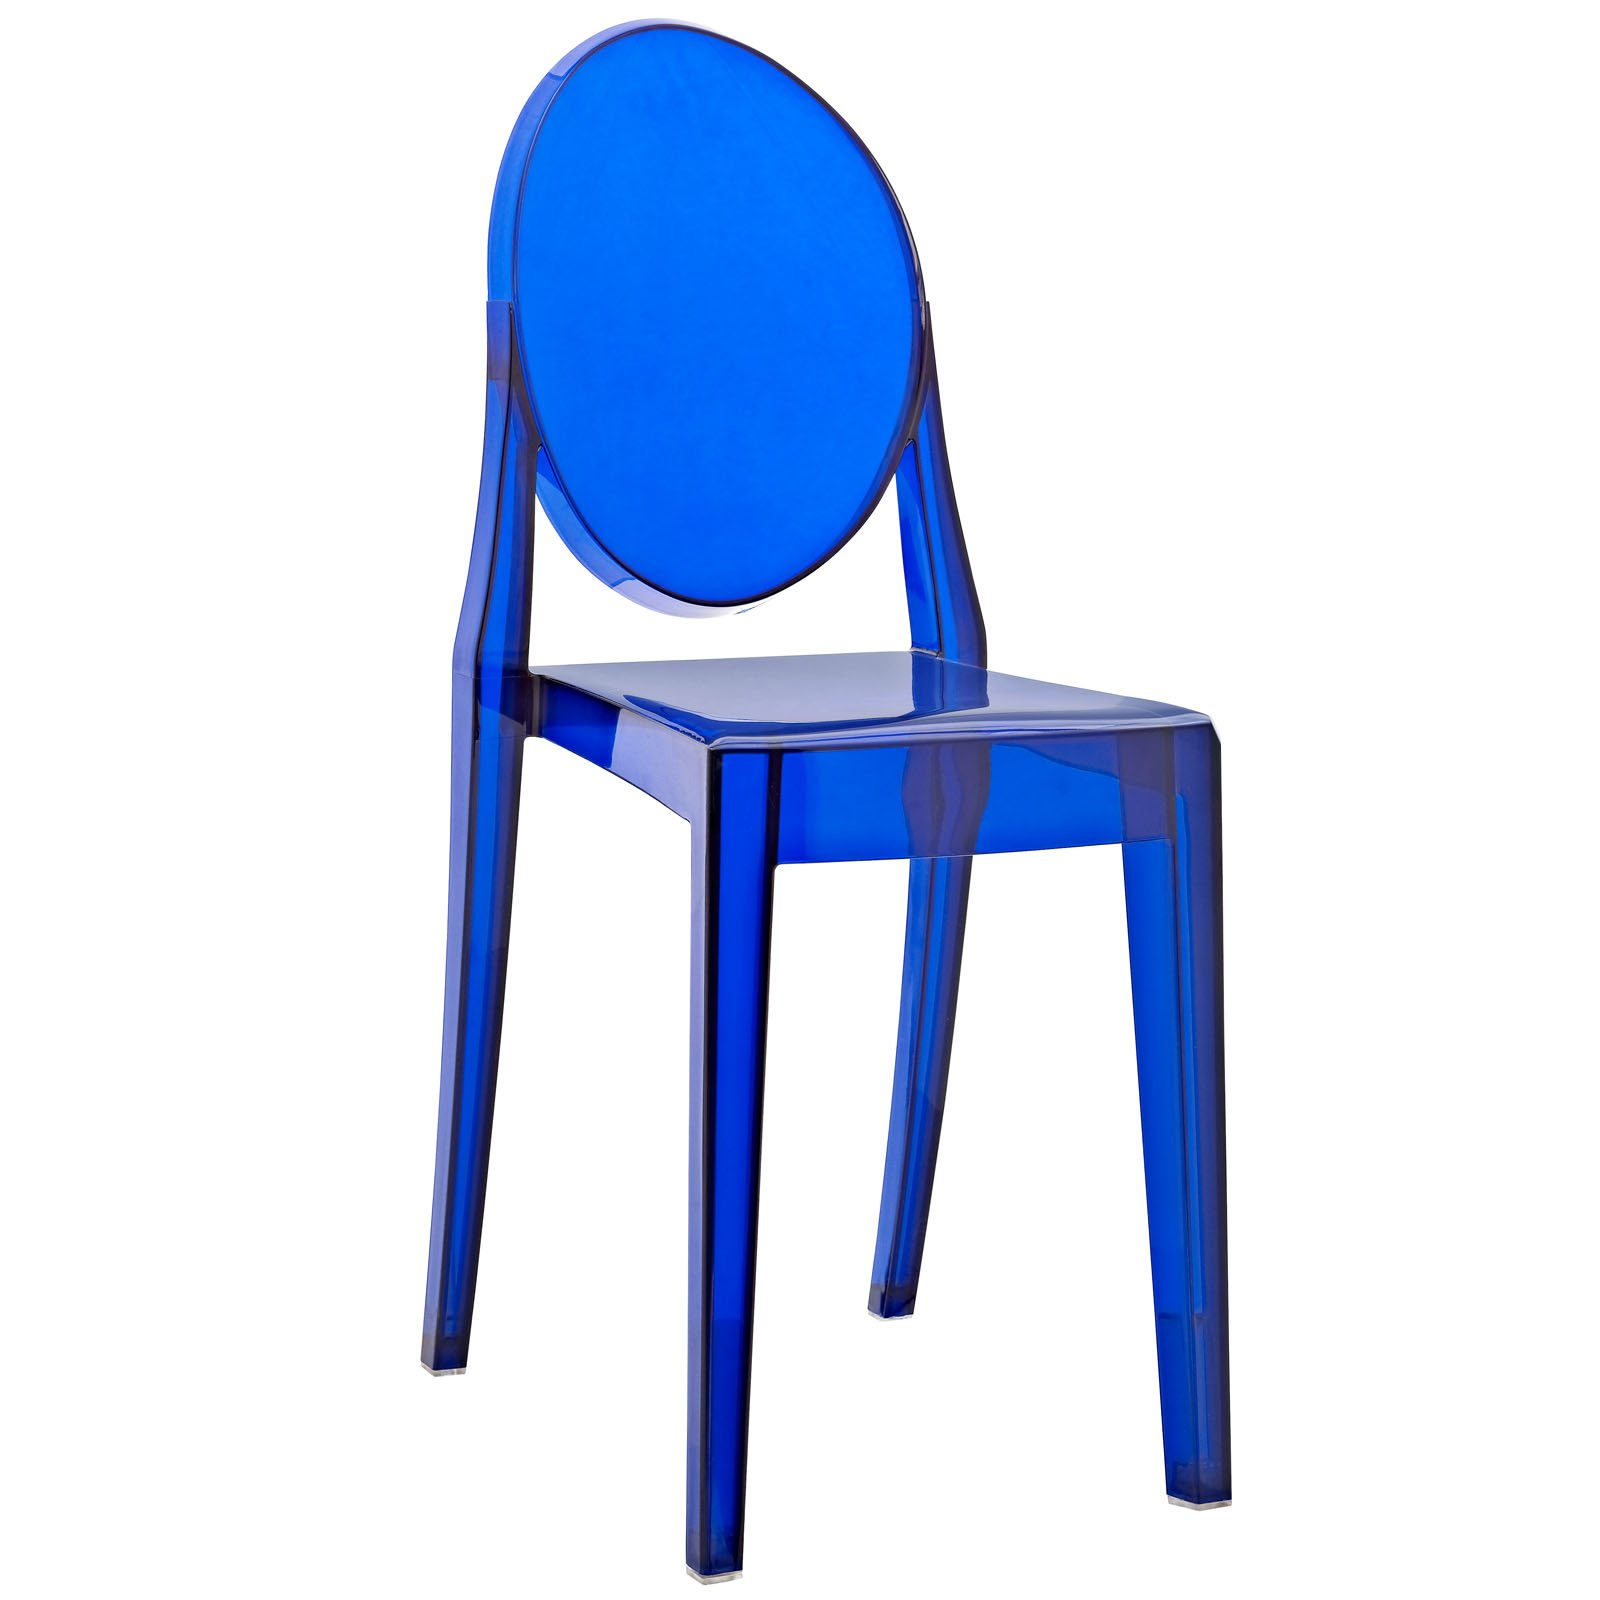 Modway Casper Modern Acrylic Stacking Kitchen and Dining Room Chair in Blue - Fully Assembled